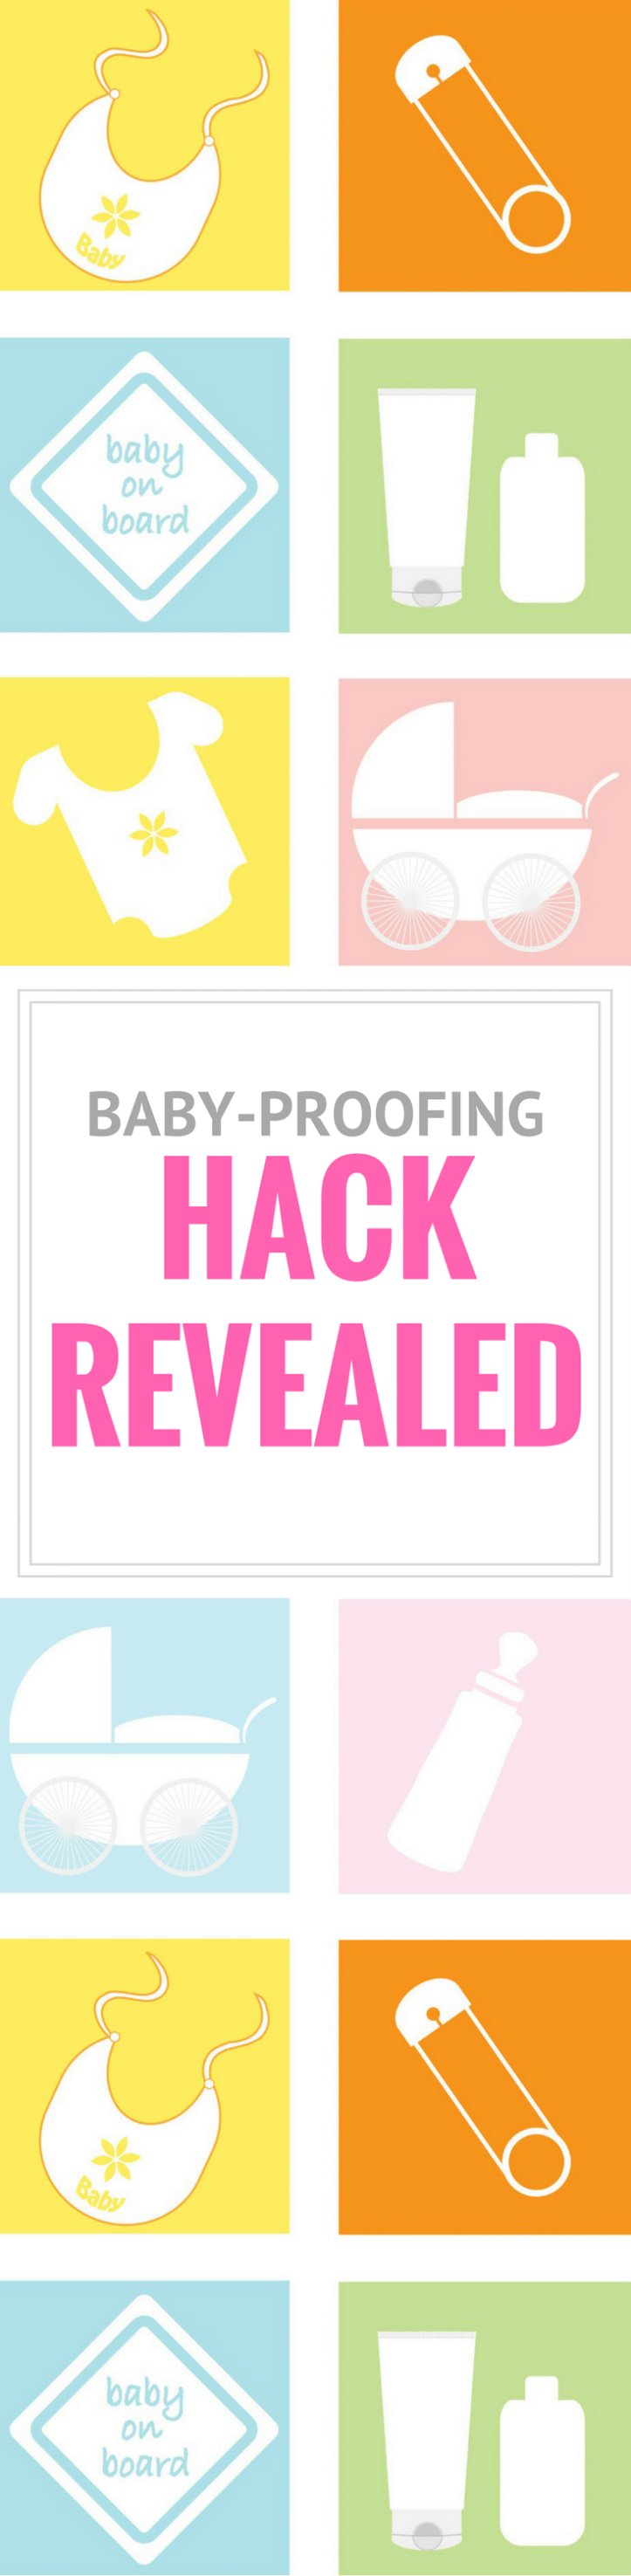 Baby-proofing Hack Revealed